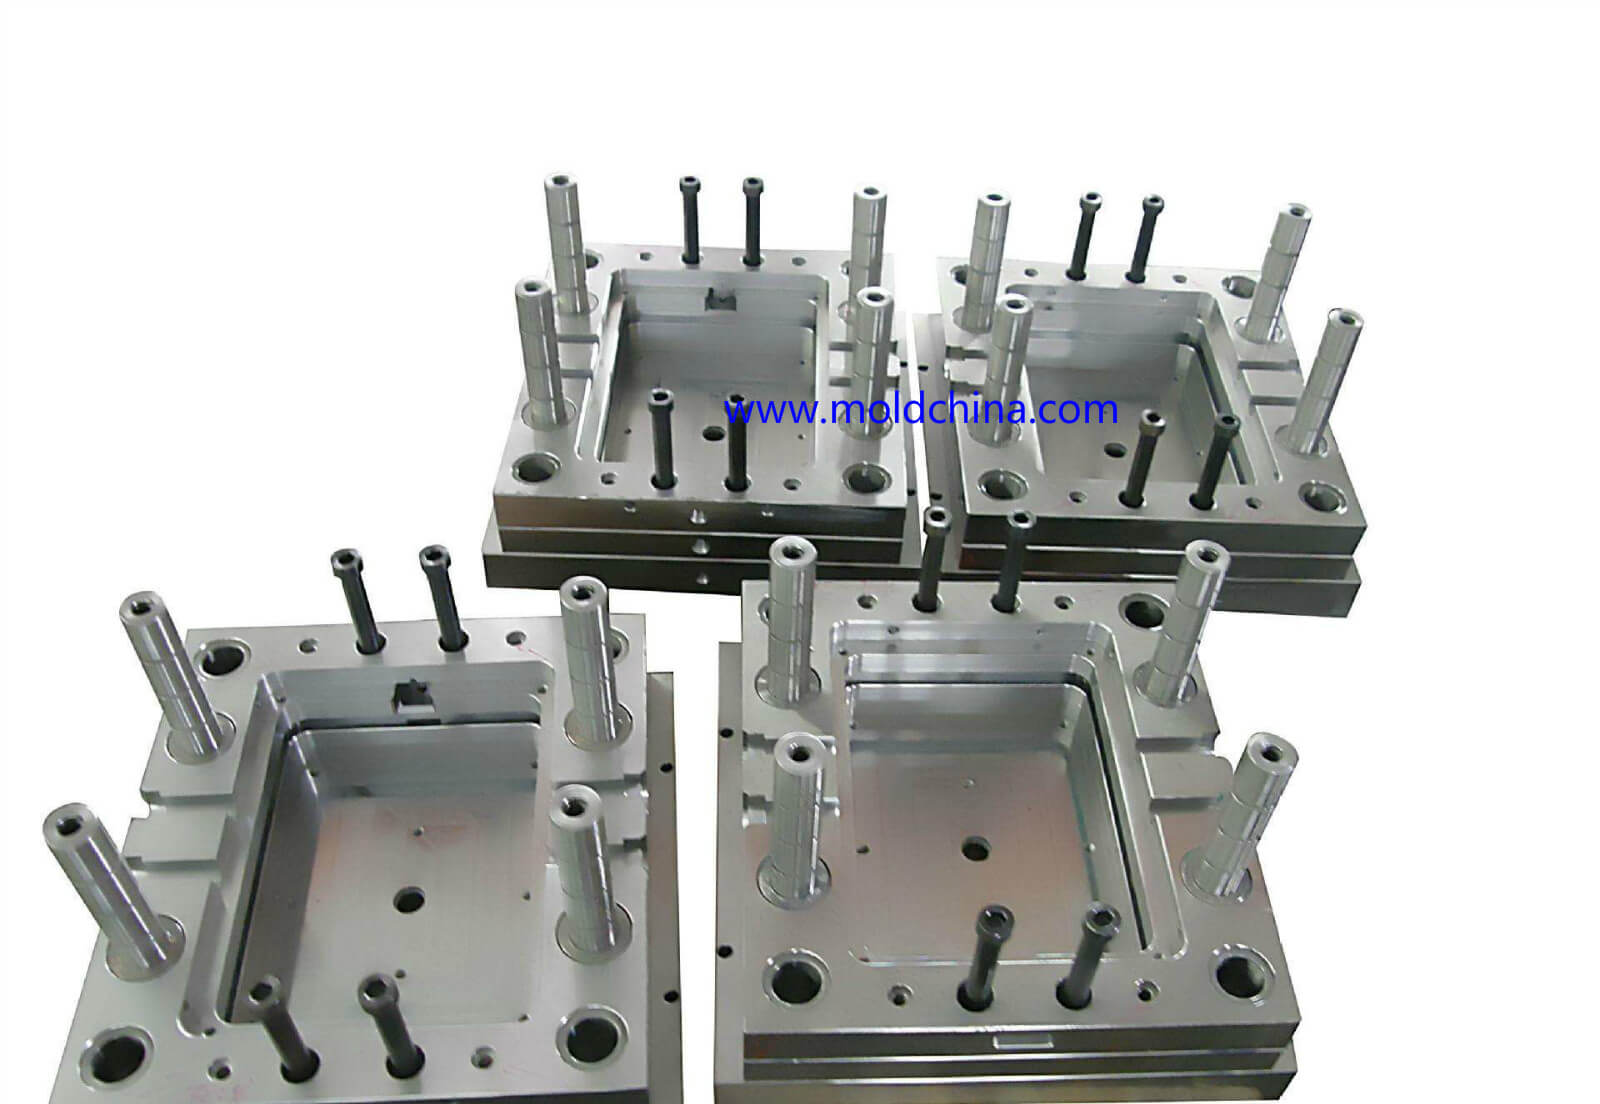 Plastic injection mold steels